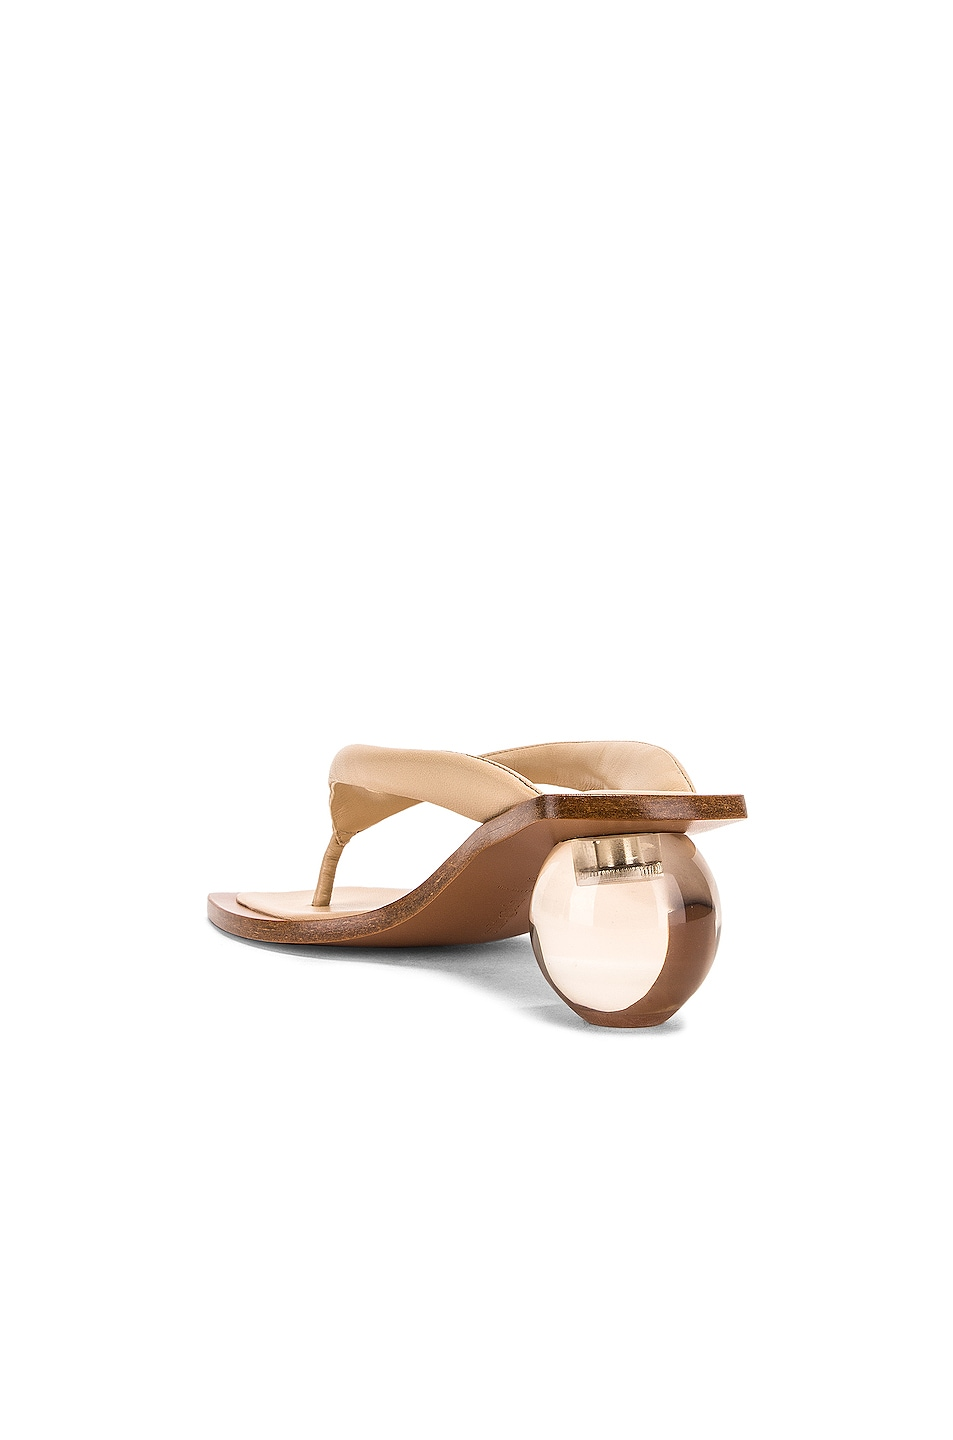 Image 3 of Cult Gaia Jasmin Sandal in Sand